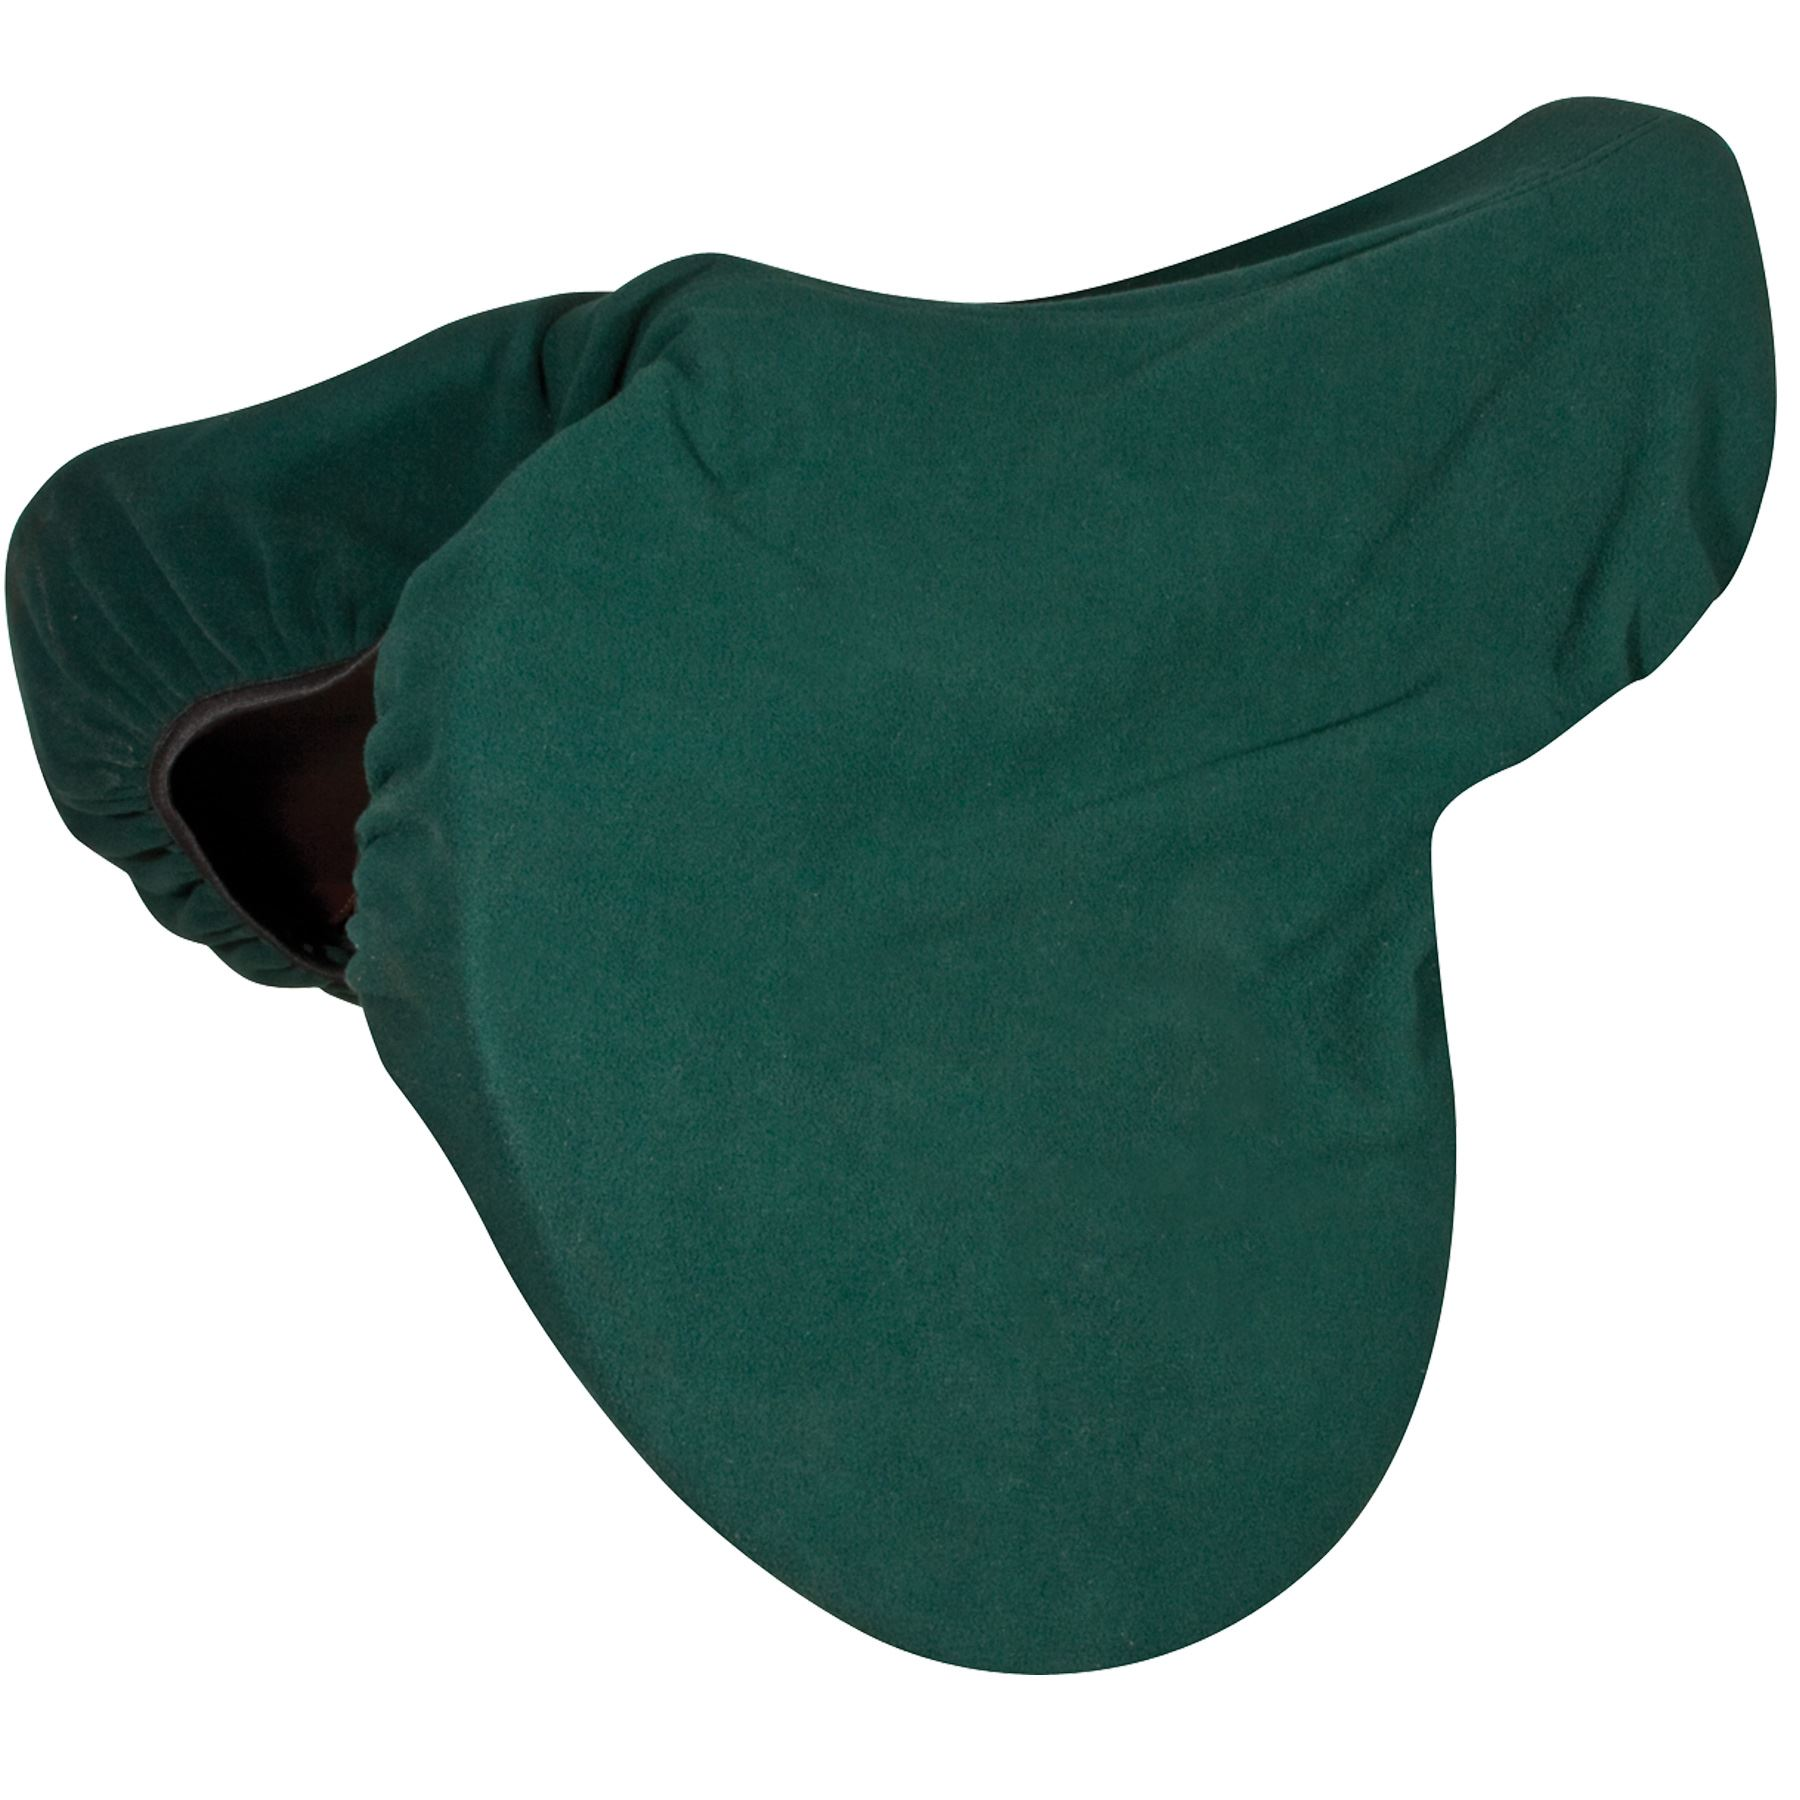 Dura-Tech® Polar Fleece Saddle Cover